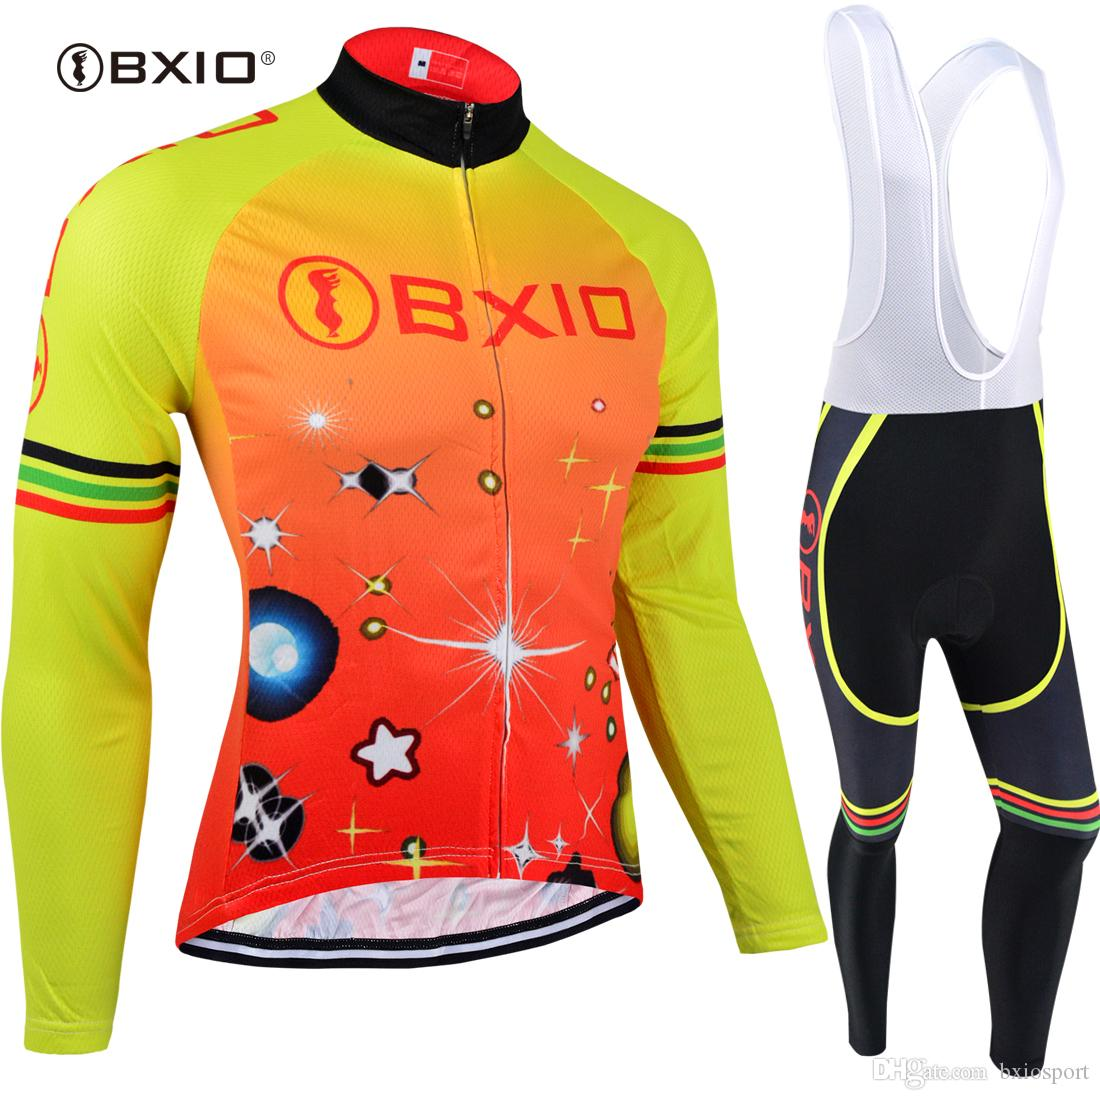 BXIO Own Brand Cycling Jersey Winter Keep Warm Bicycle Clothing Pro Team 3  Rear Pockets Bike Jersey Men Ropa Ciclismo Invierno Long Sleeve Cycling  Jersey ... 5640e4c52